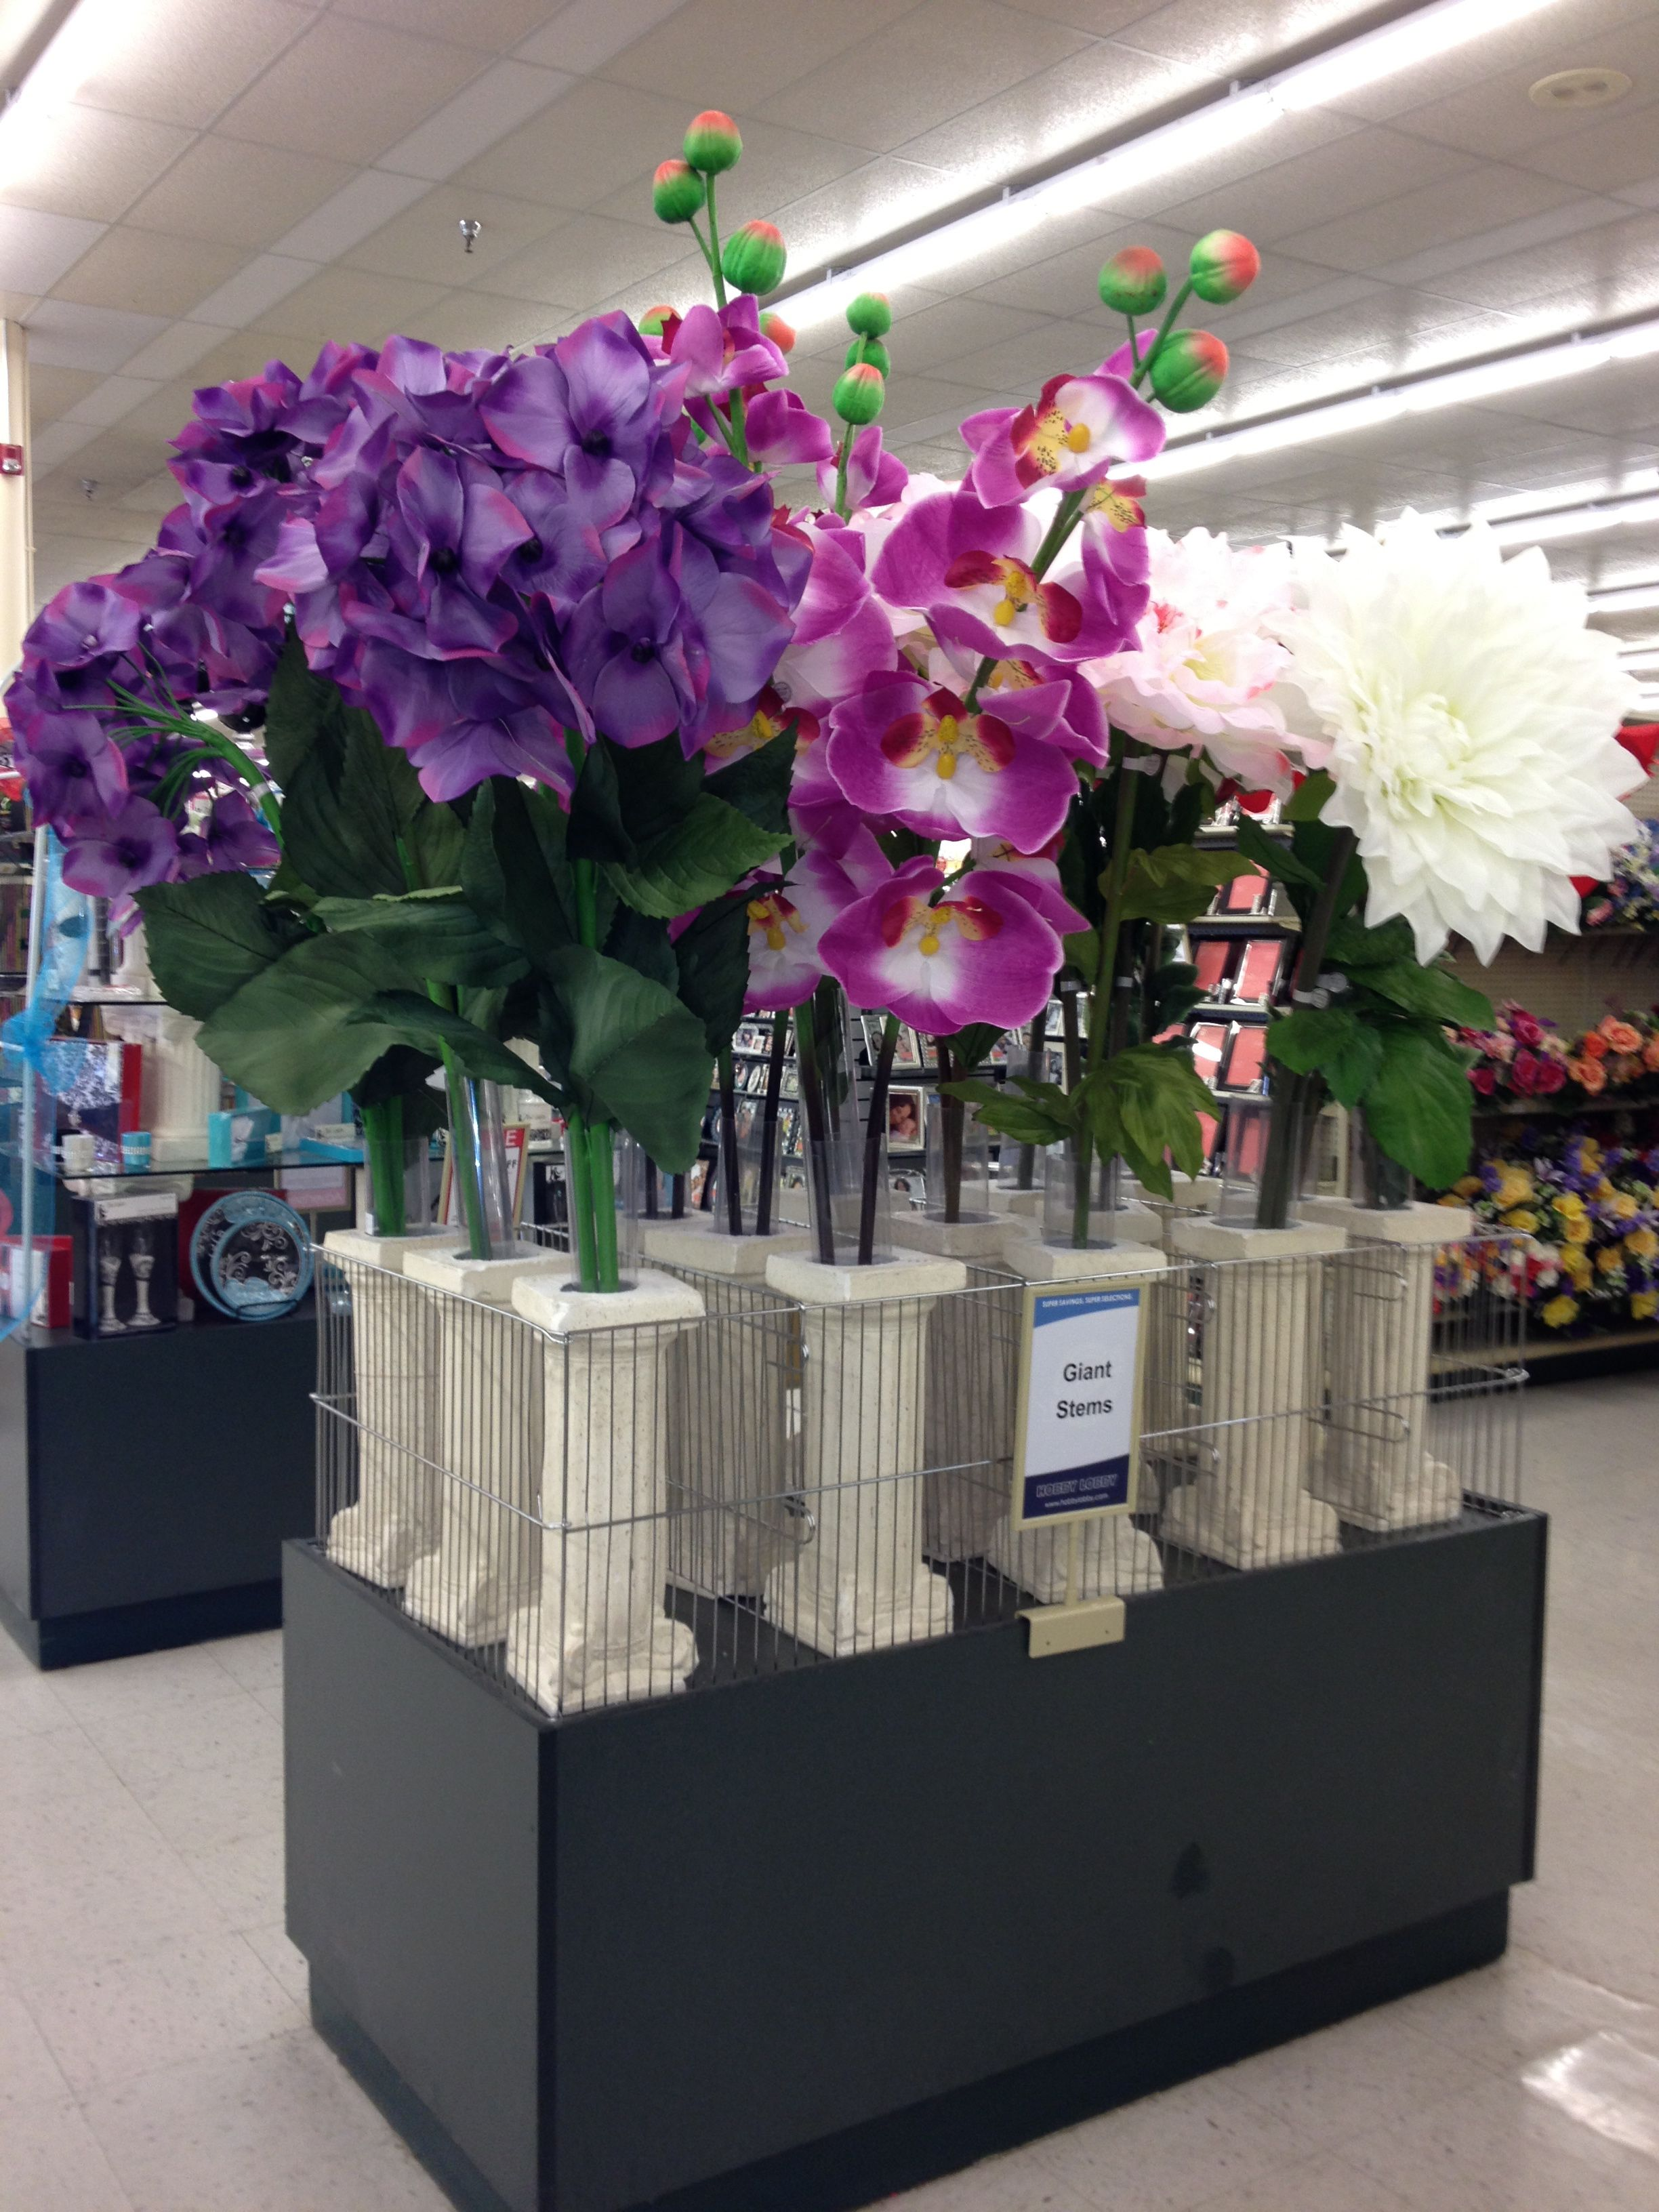 Giant Flowers At Hobby Lobby I Love Them All But What Can I Do With Them Hobby Lobby Flowers Hobby Lobby Christmas Large Paper Flowers